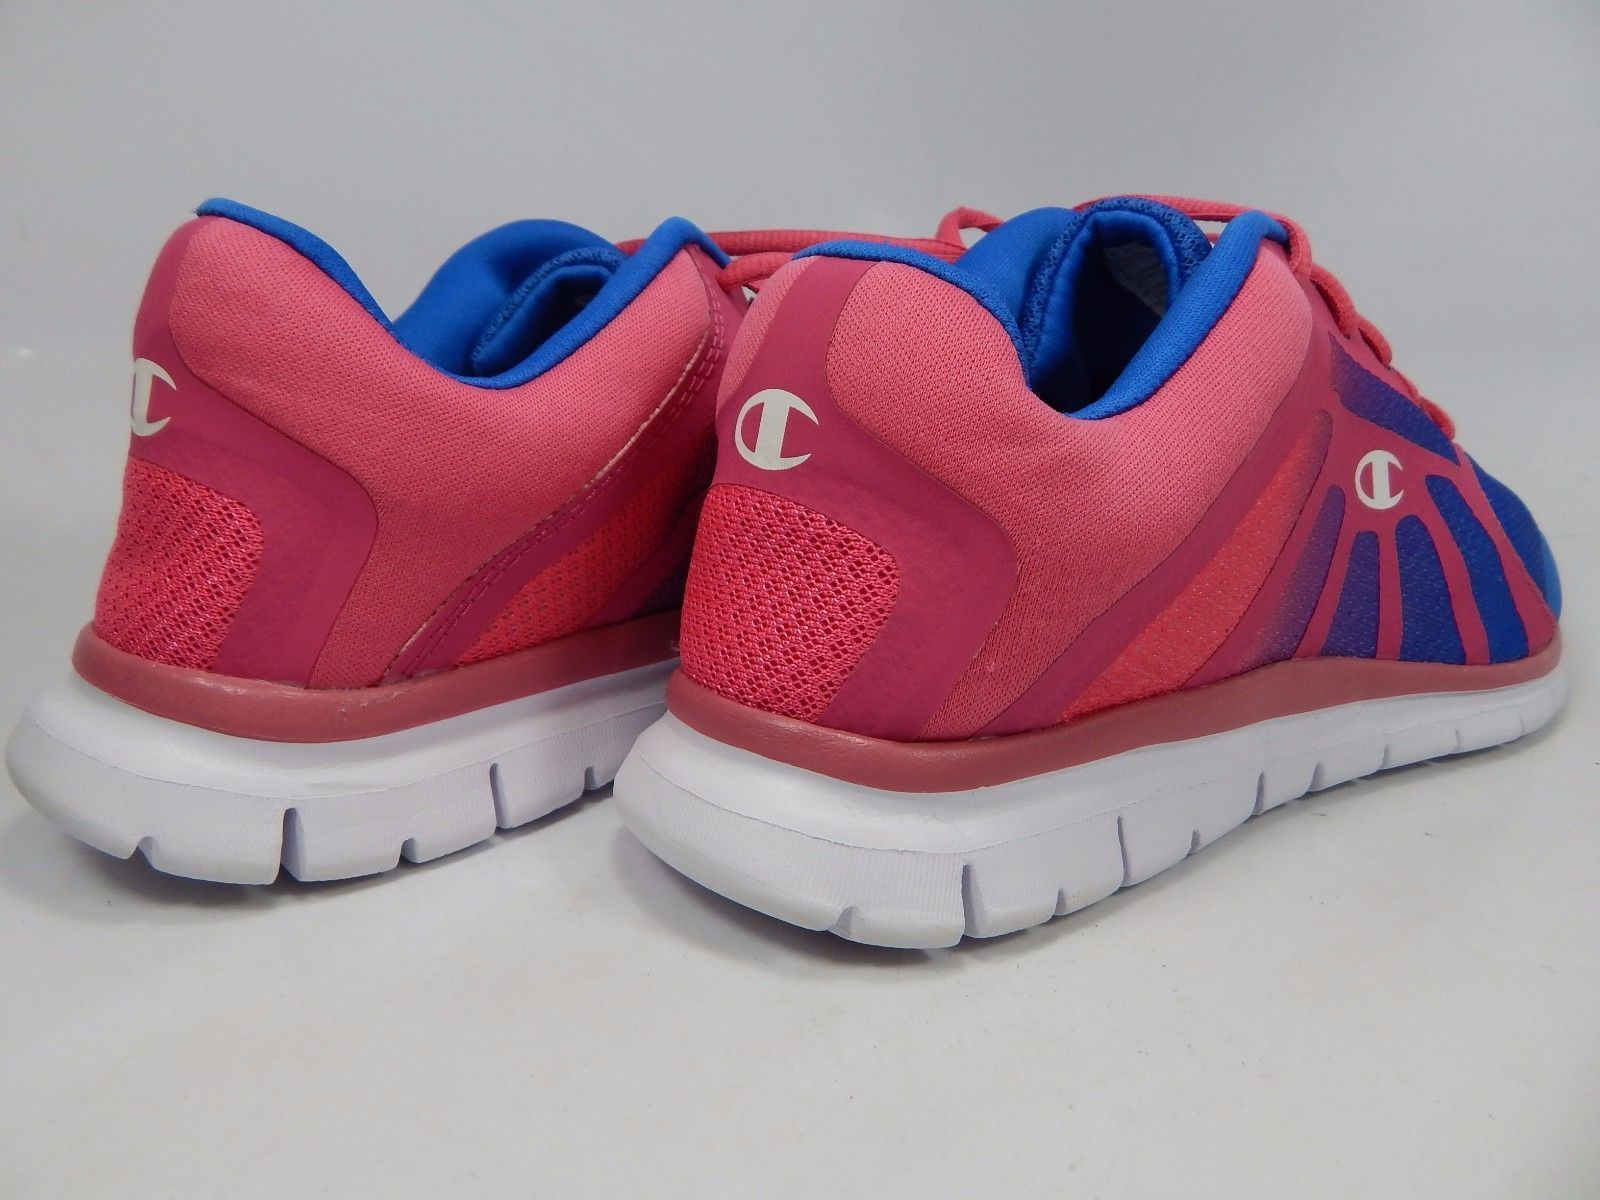 Champion Women's Running Atheltic Shoes Size US 11 EU 44 Pink Blue